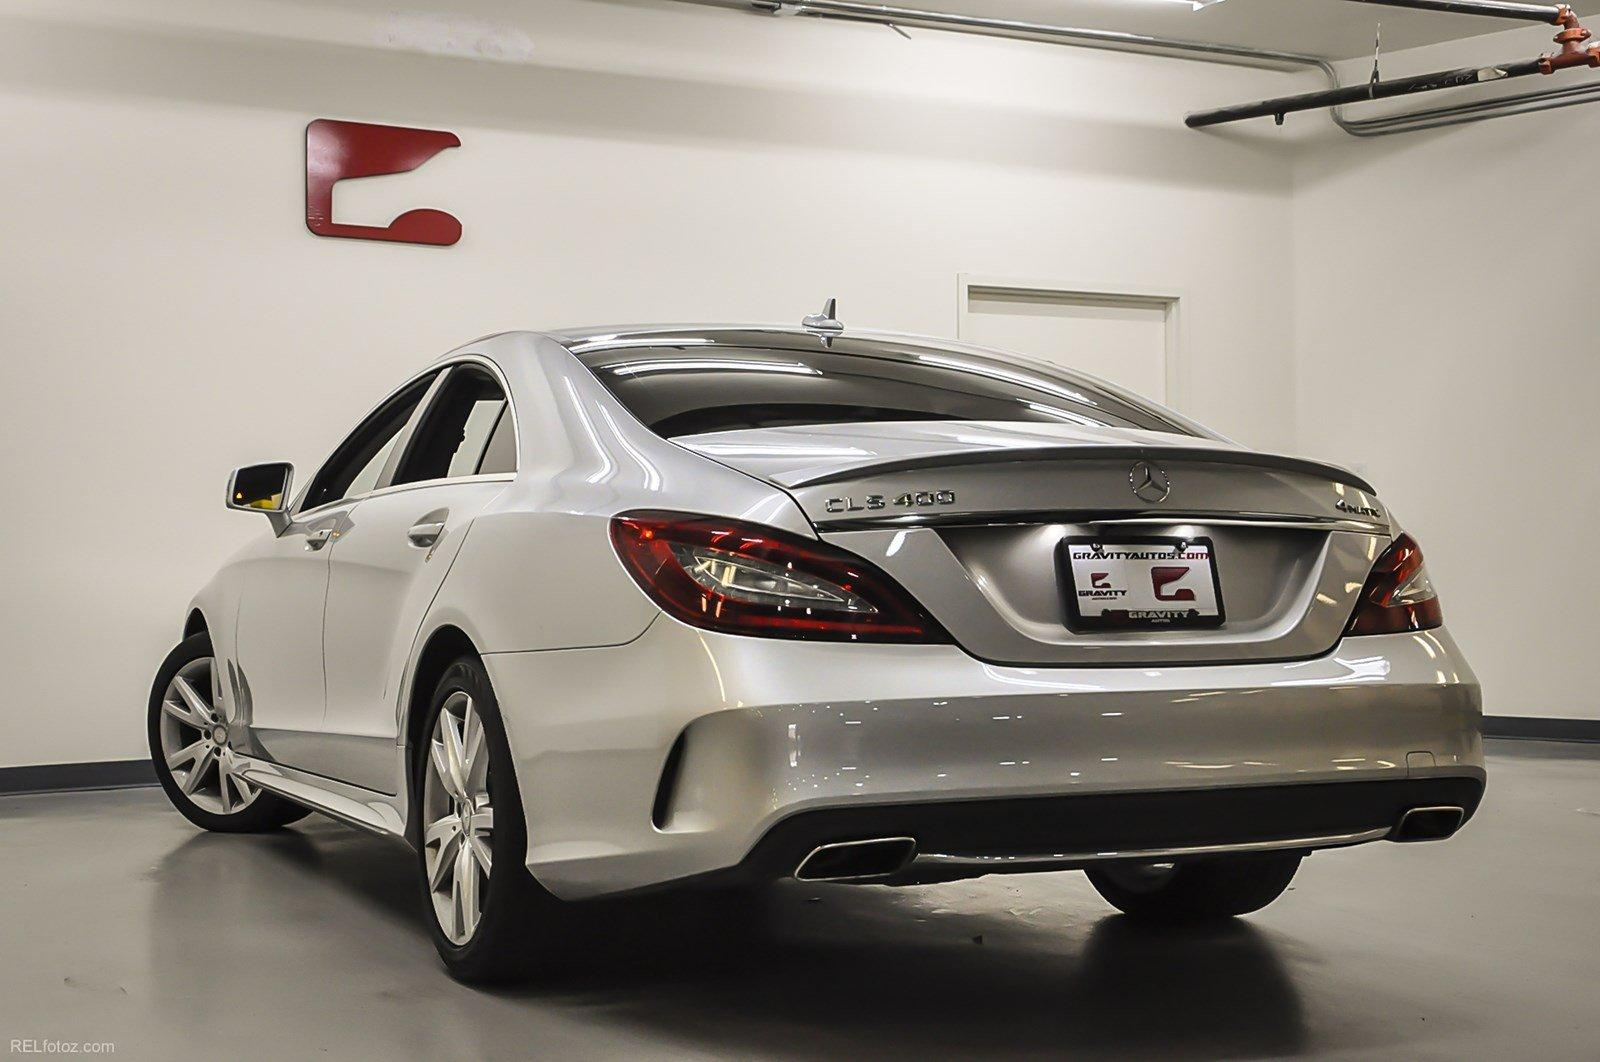 All Types cls mercedes 2015 : 2015 Mercedes-Benz CLS-Class CLS 400 Stock # 147627 for sale near ...